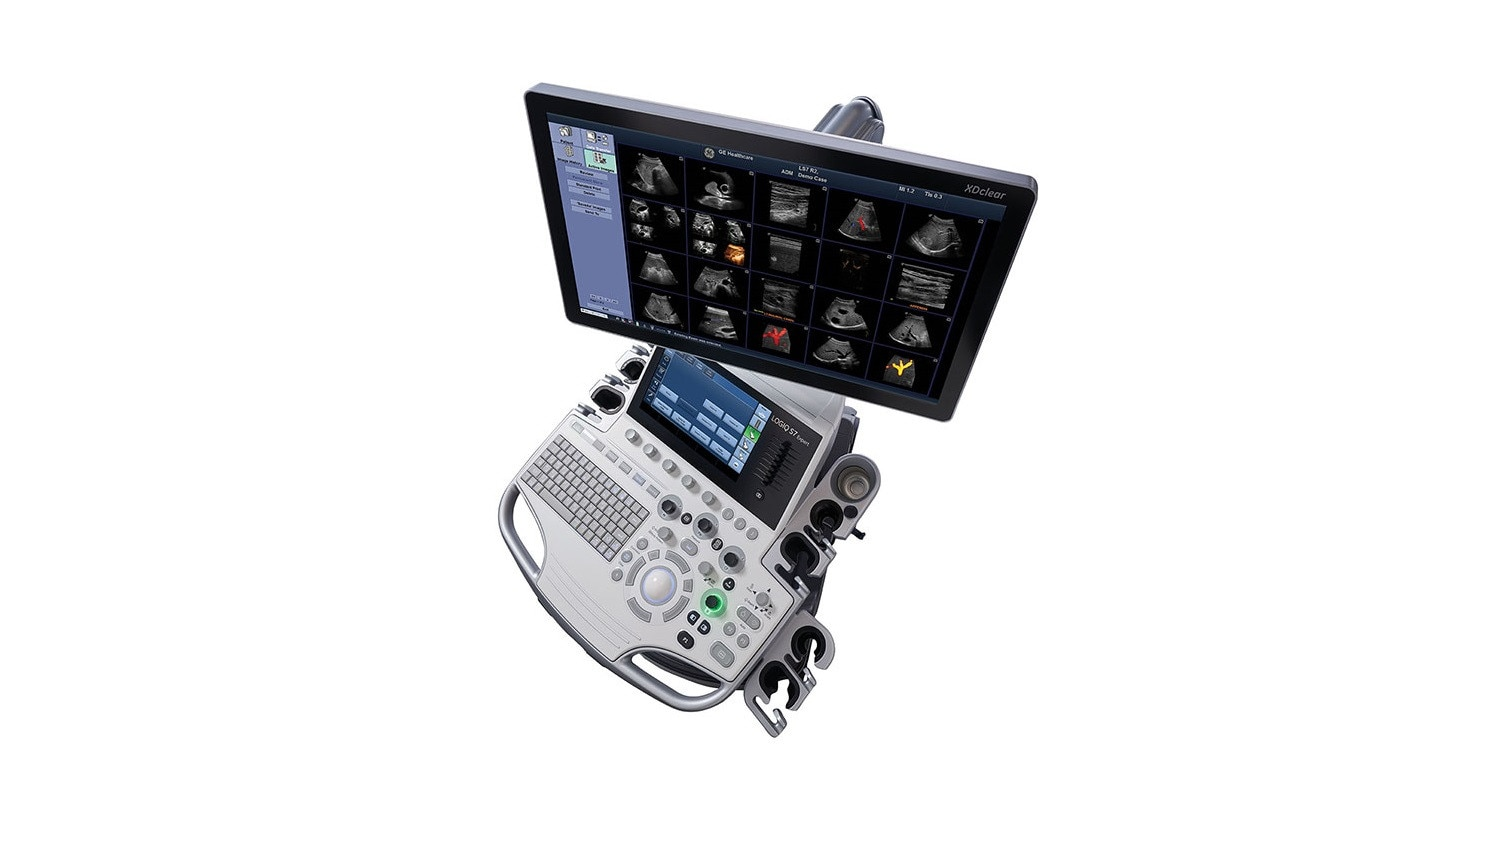 product-product-categories-ultrasound-urology-logiq s7 ultrasound system.jpg